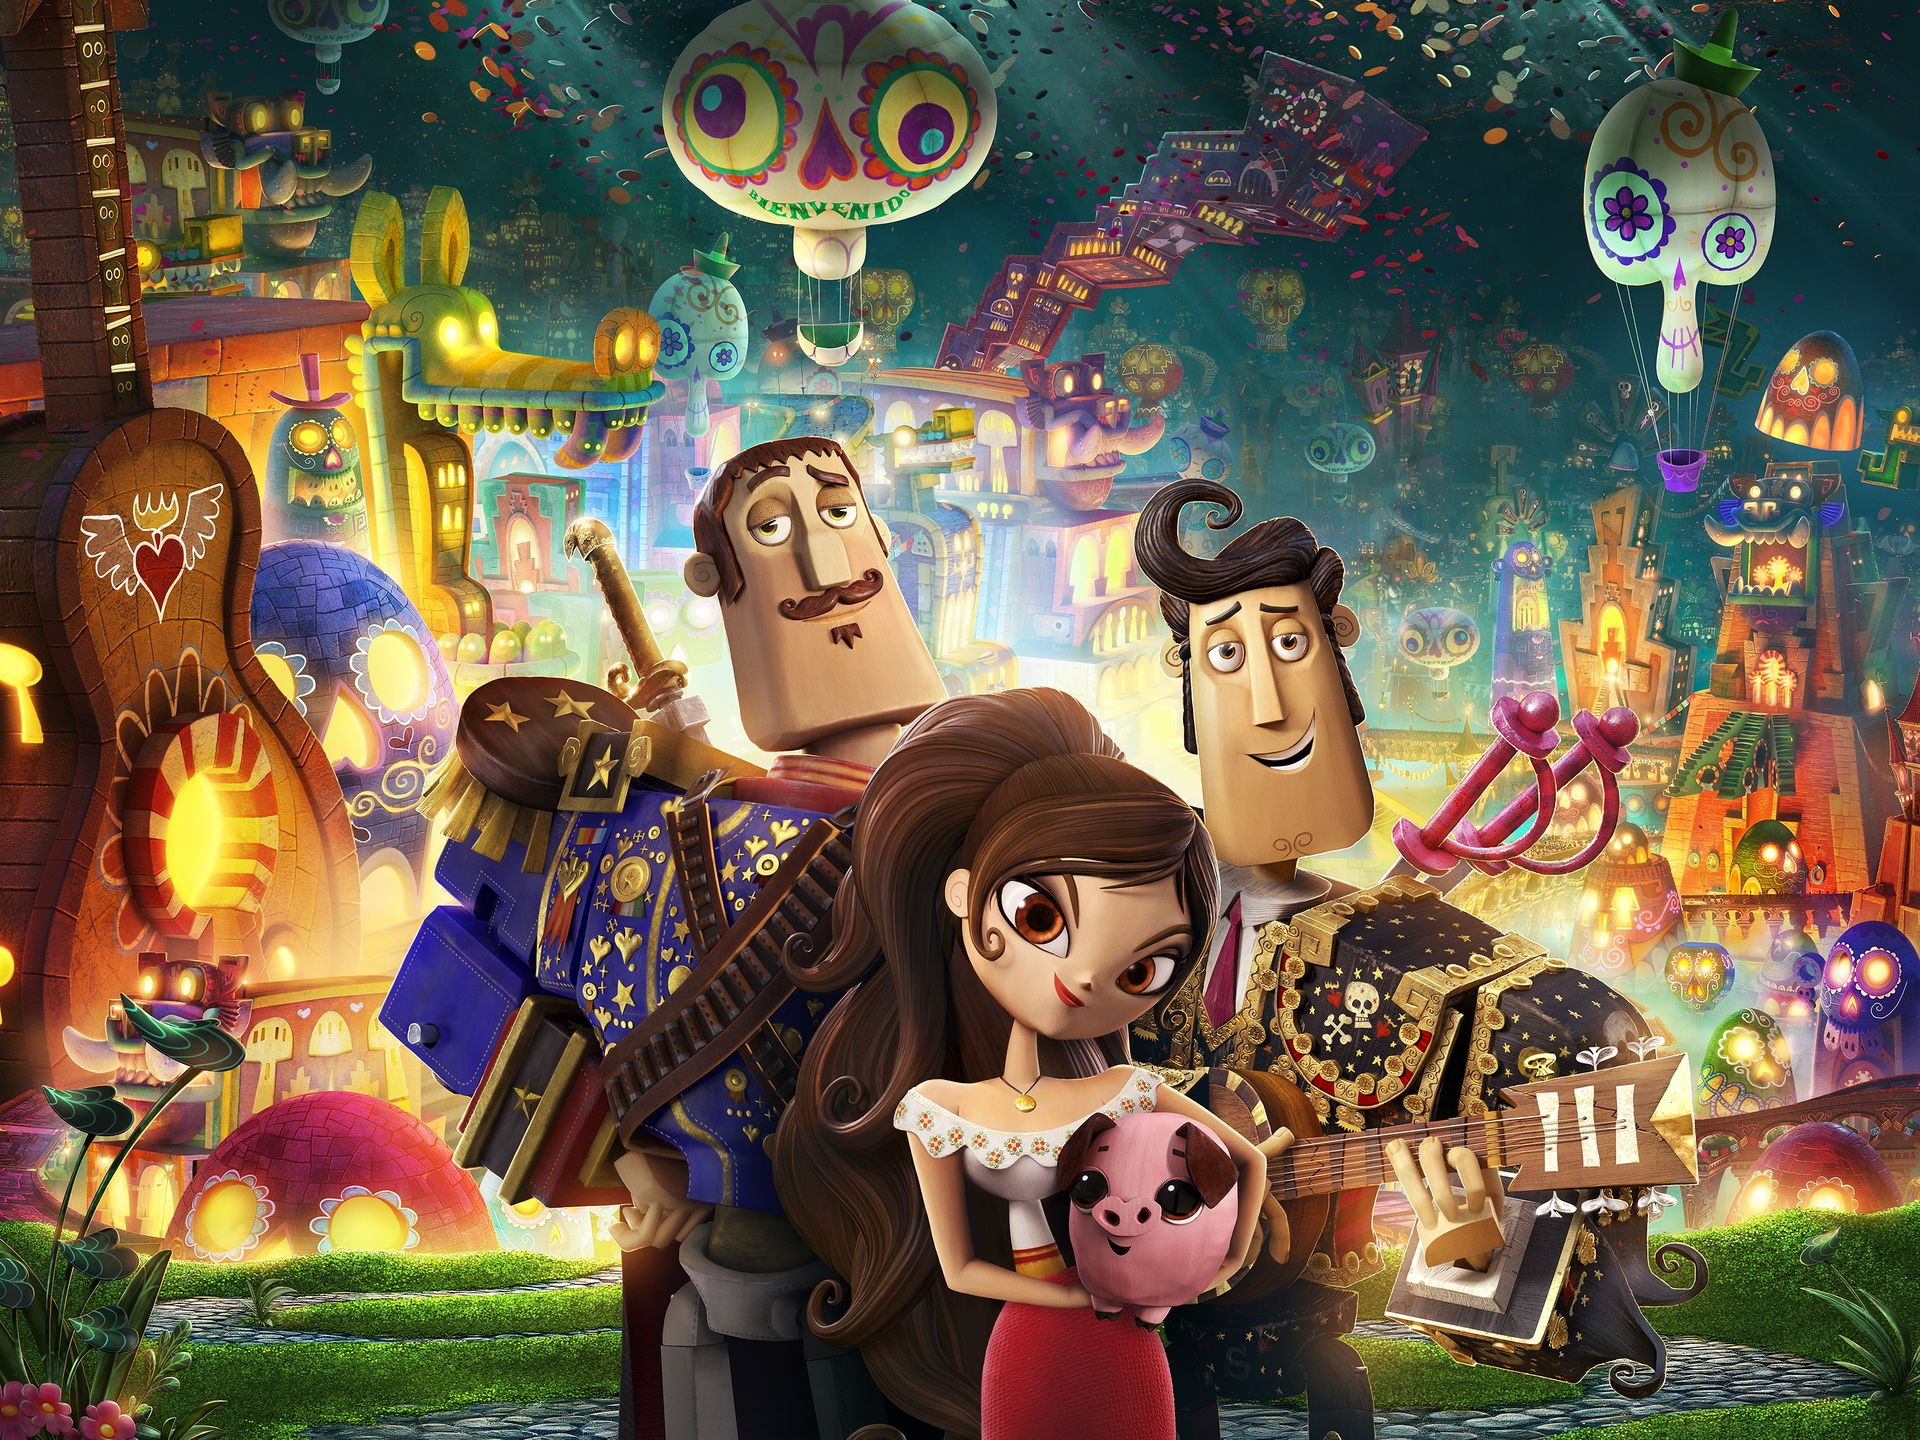 The Book of Life .:MOVIE REVIEW:.